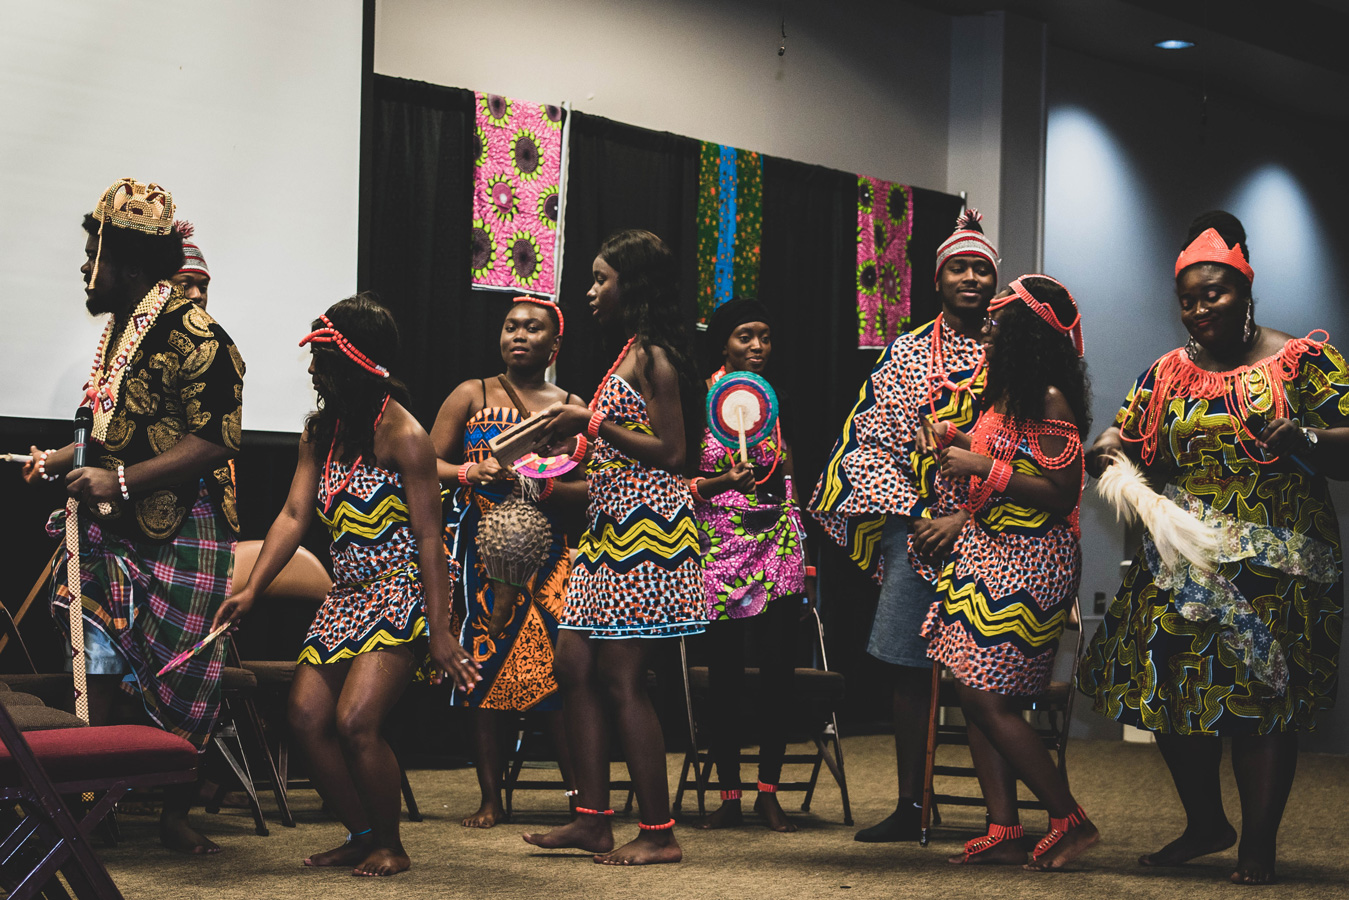 Performers at the African MegaFest